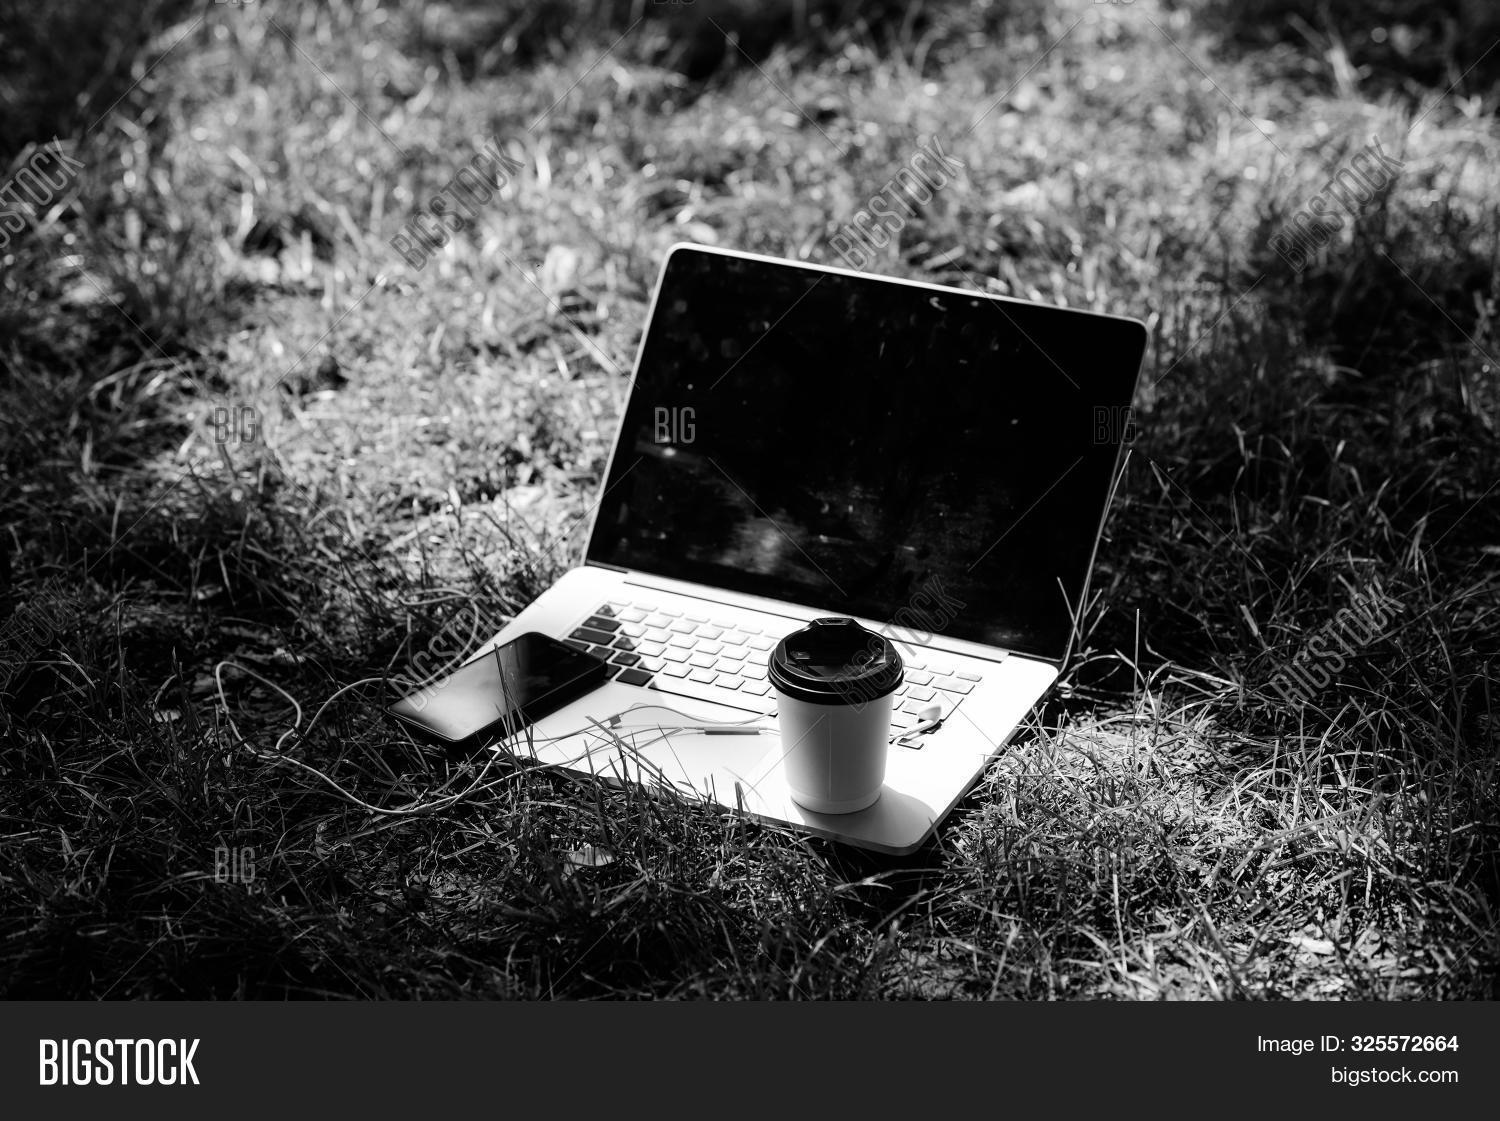 Summer Park. Work And Relax In Natural Environment. Green Office. Its Coffee Time. Coffee Take Away.